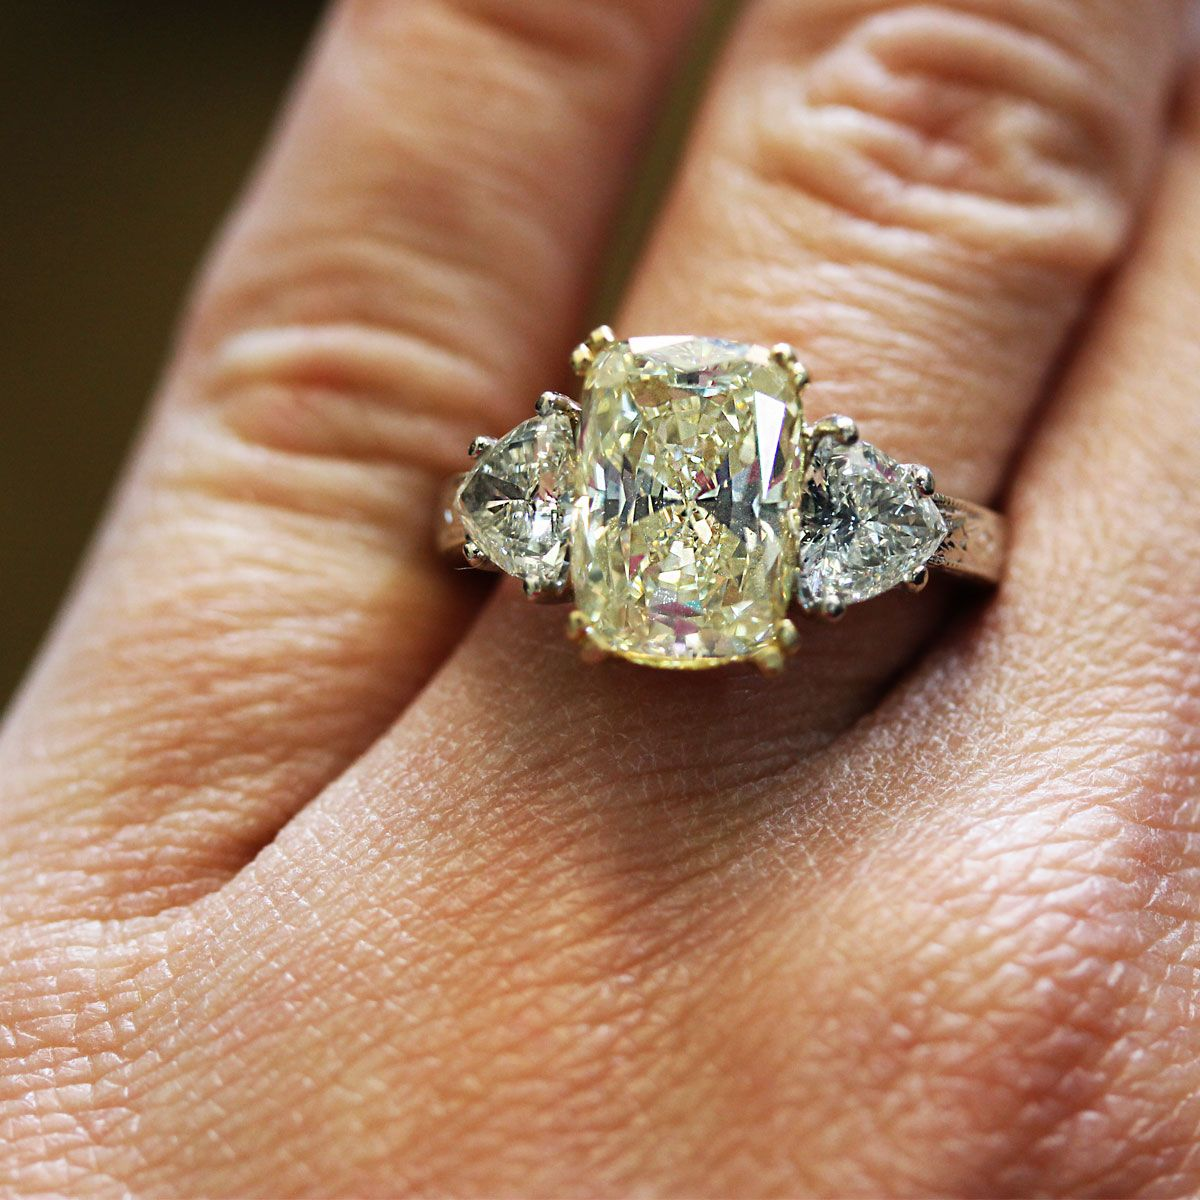 4.45ct Fancy Yellow Cushion Cut Diamond Engagement Ring with GIA ...